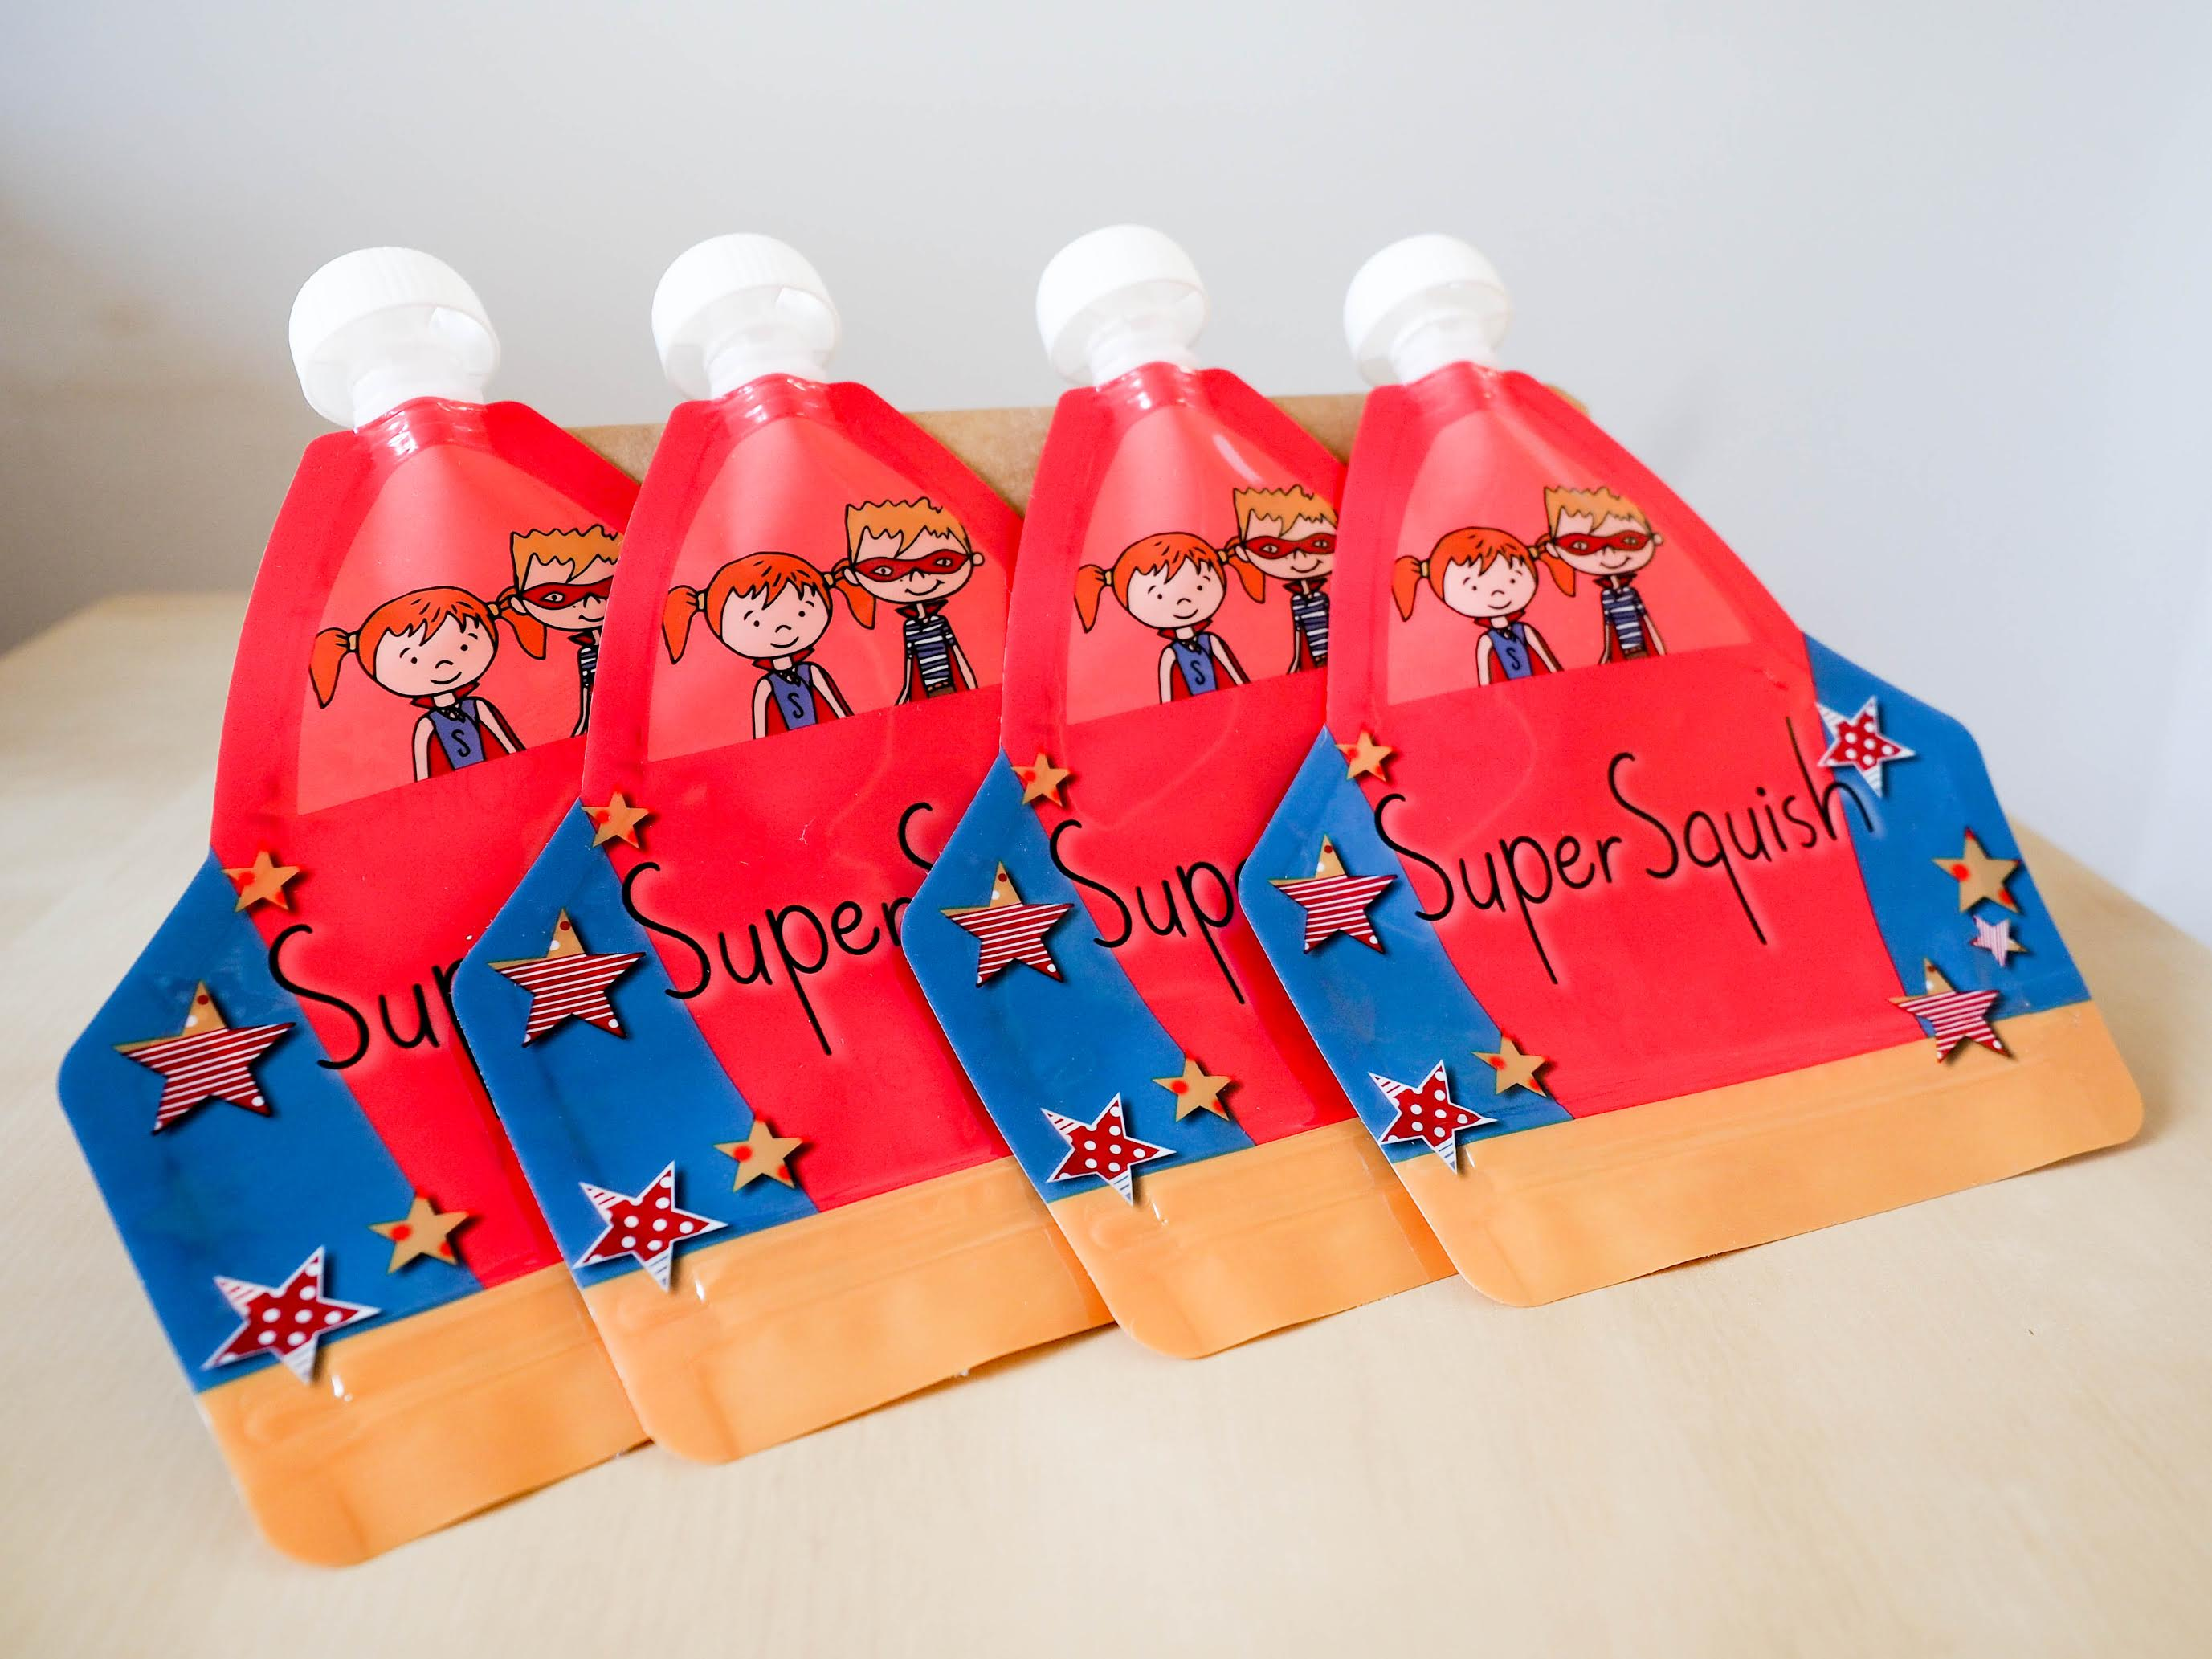 Super Squish pack of 4 reusable food pouches